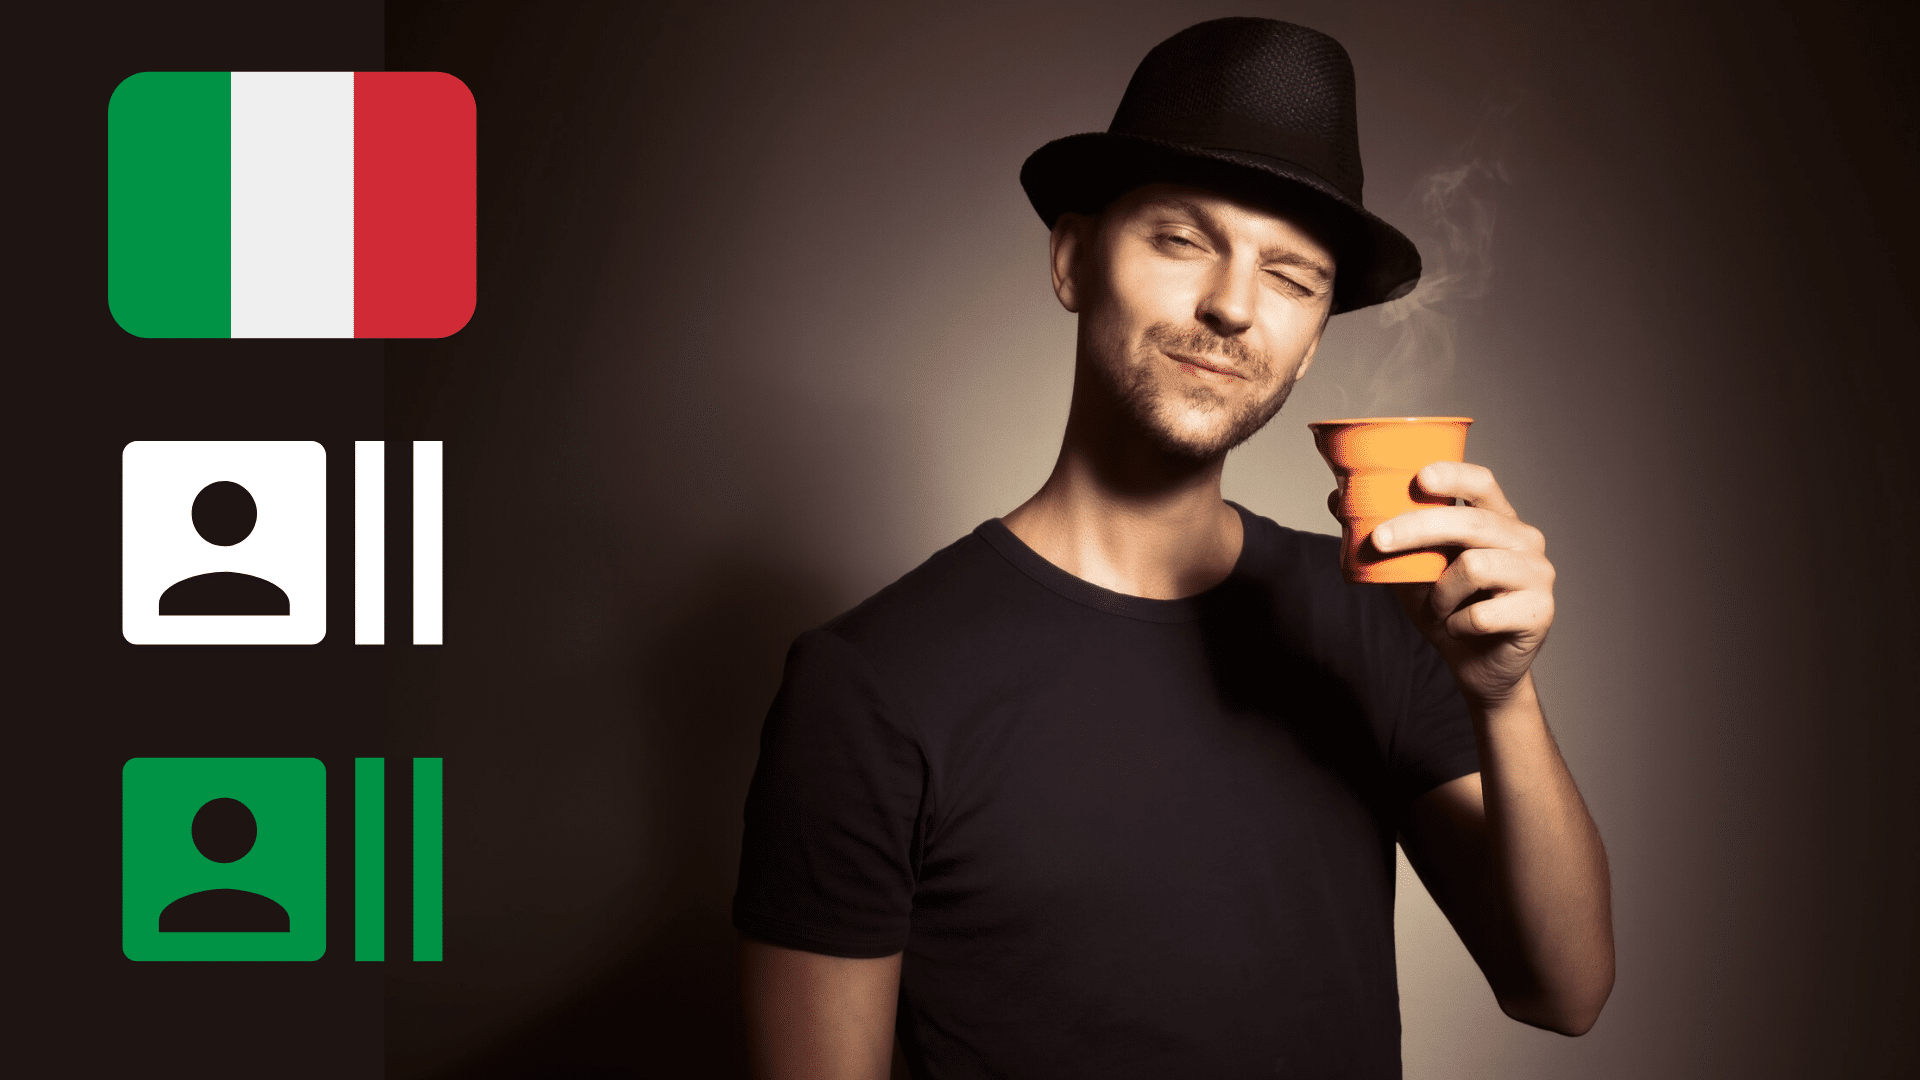 italian-man-with-flag-and-two-citizenships